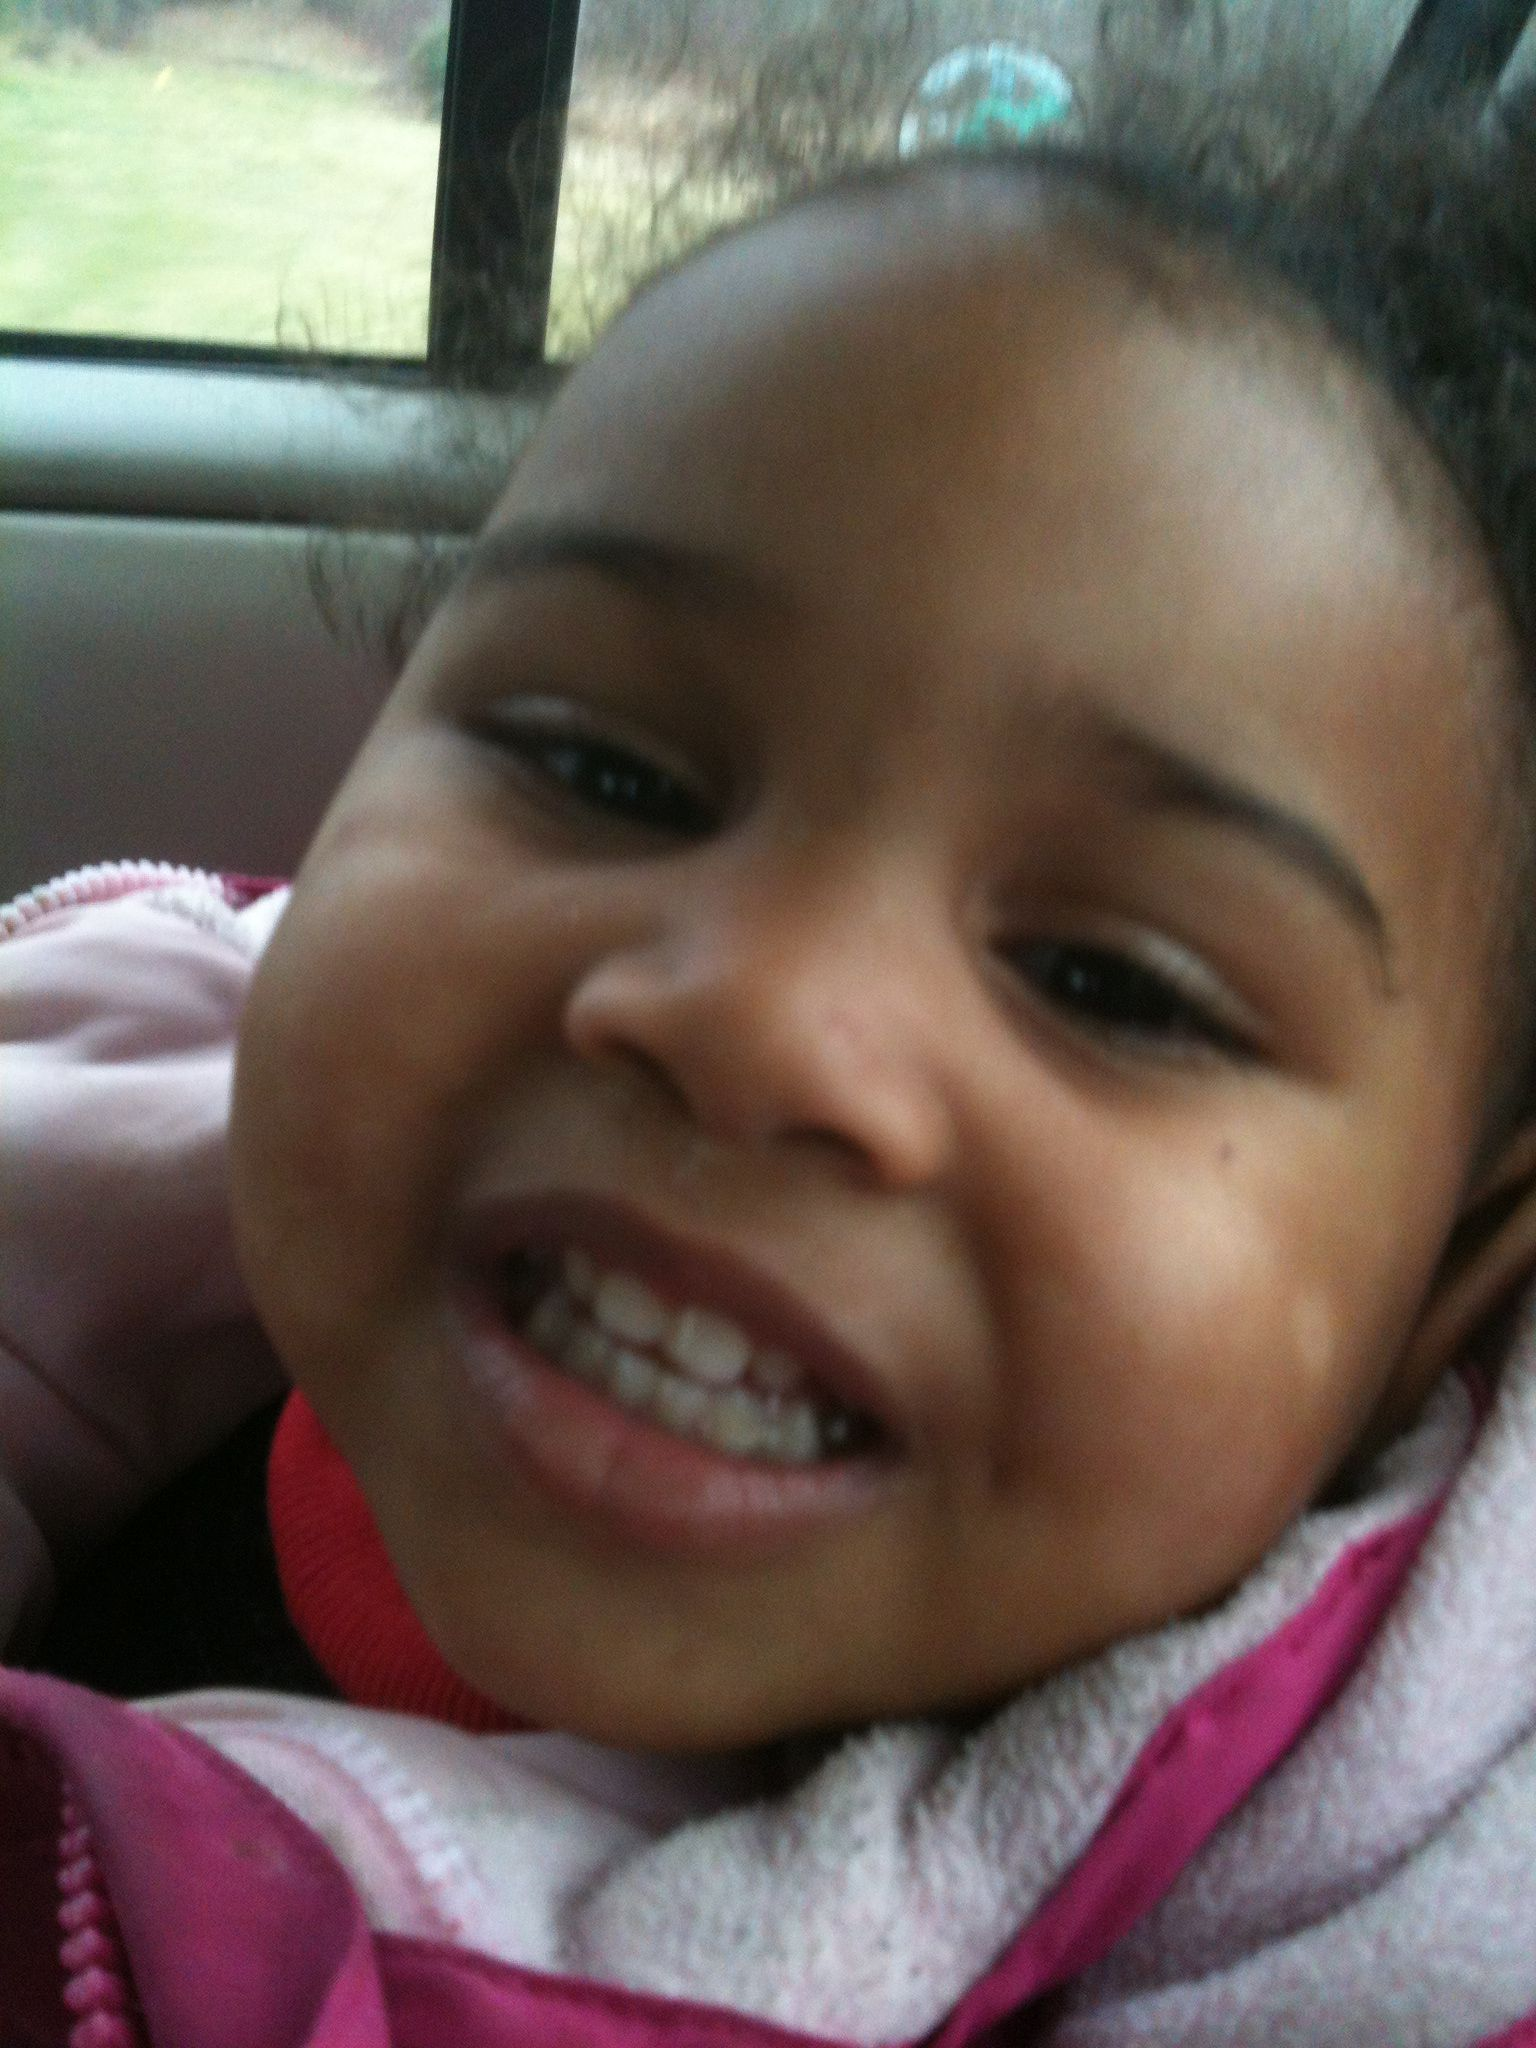 This is my cousin jayda